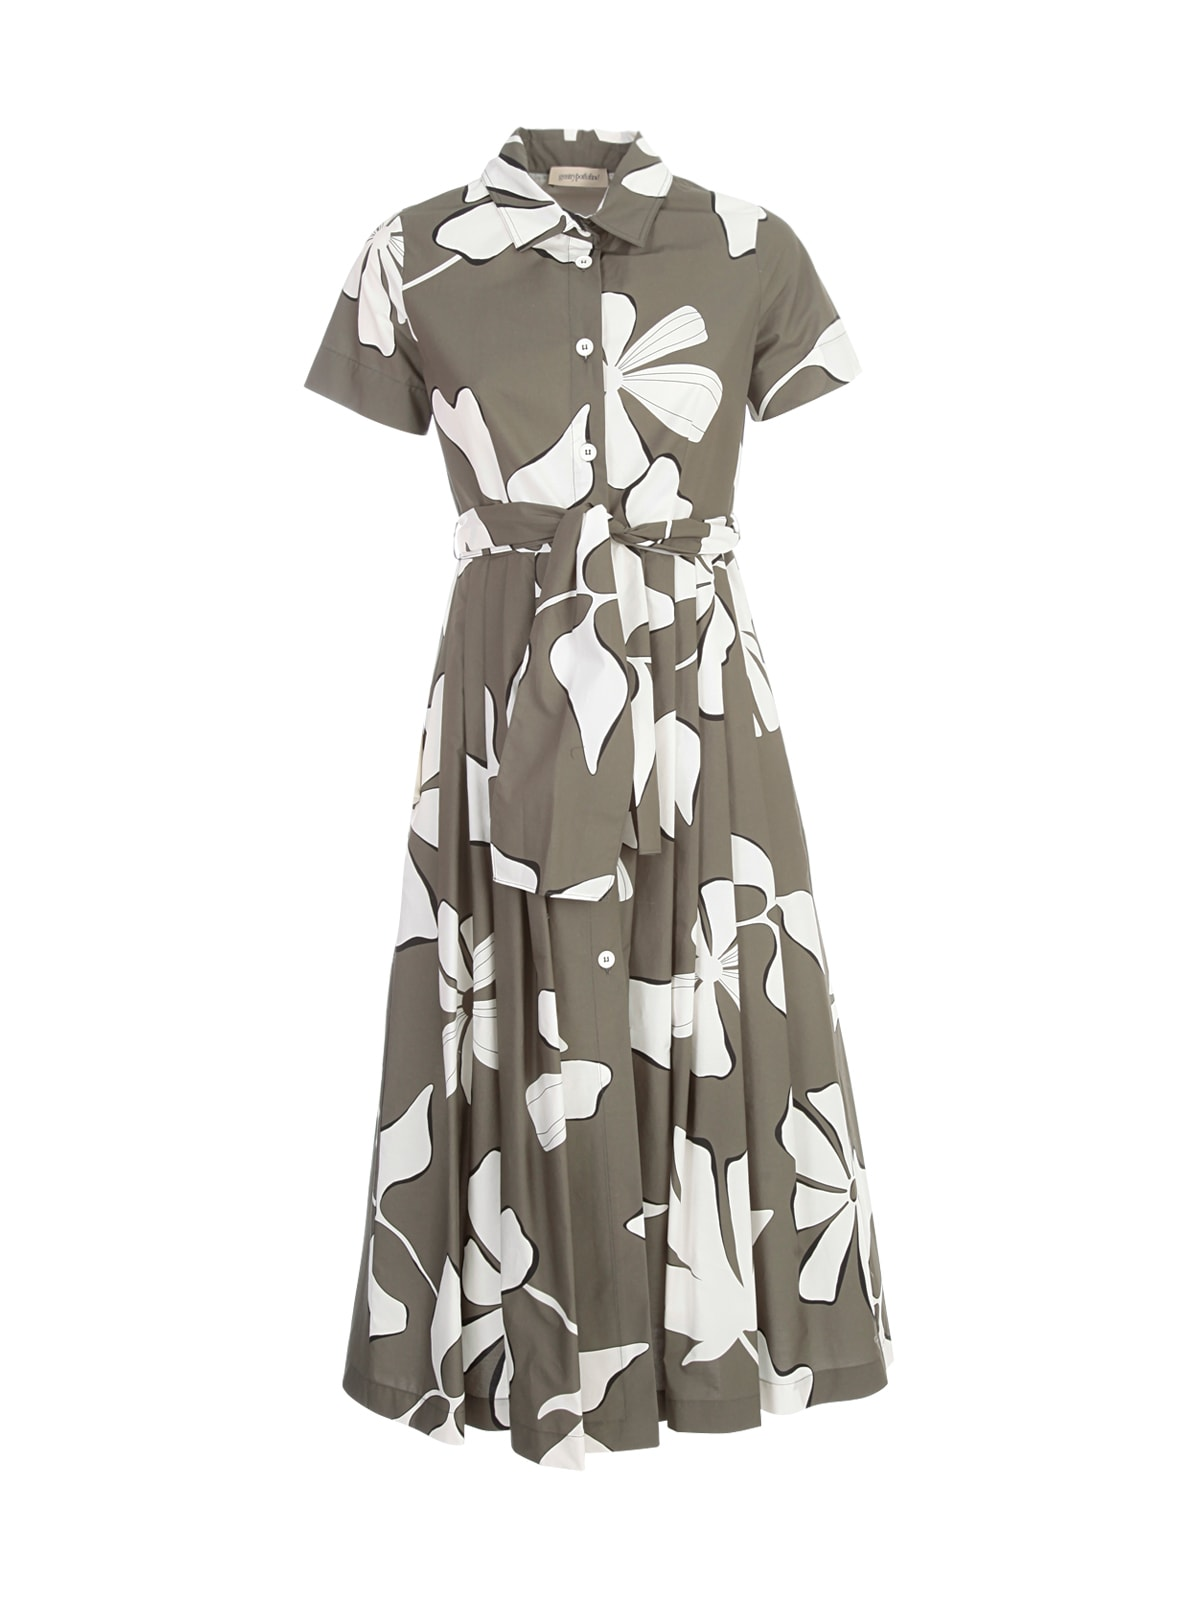 Chemisier S/s Dress W/flowers Printing